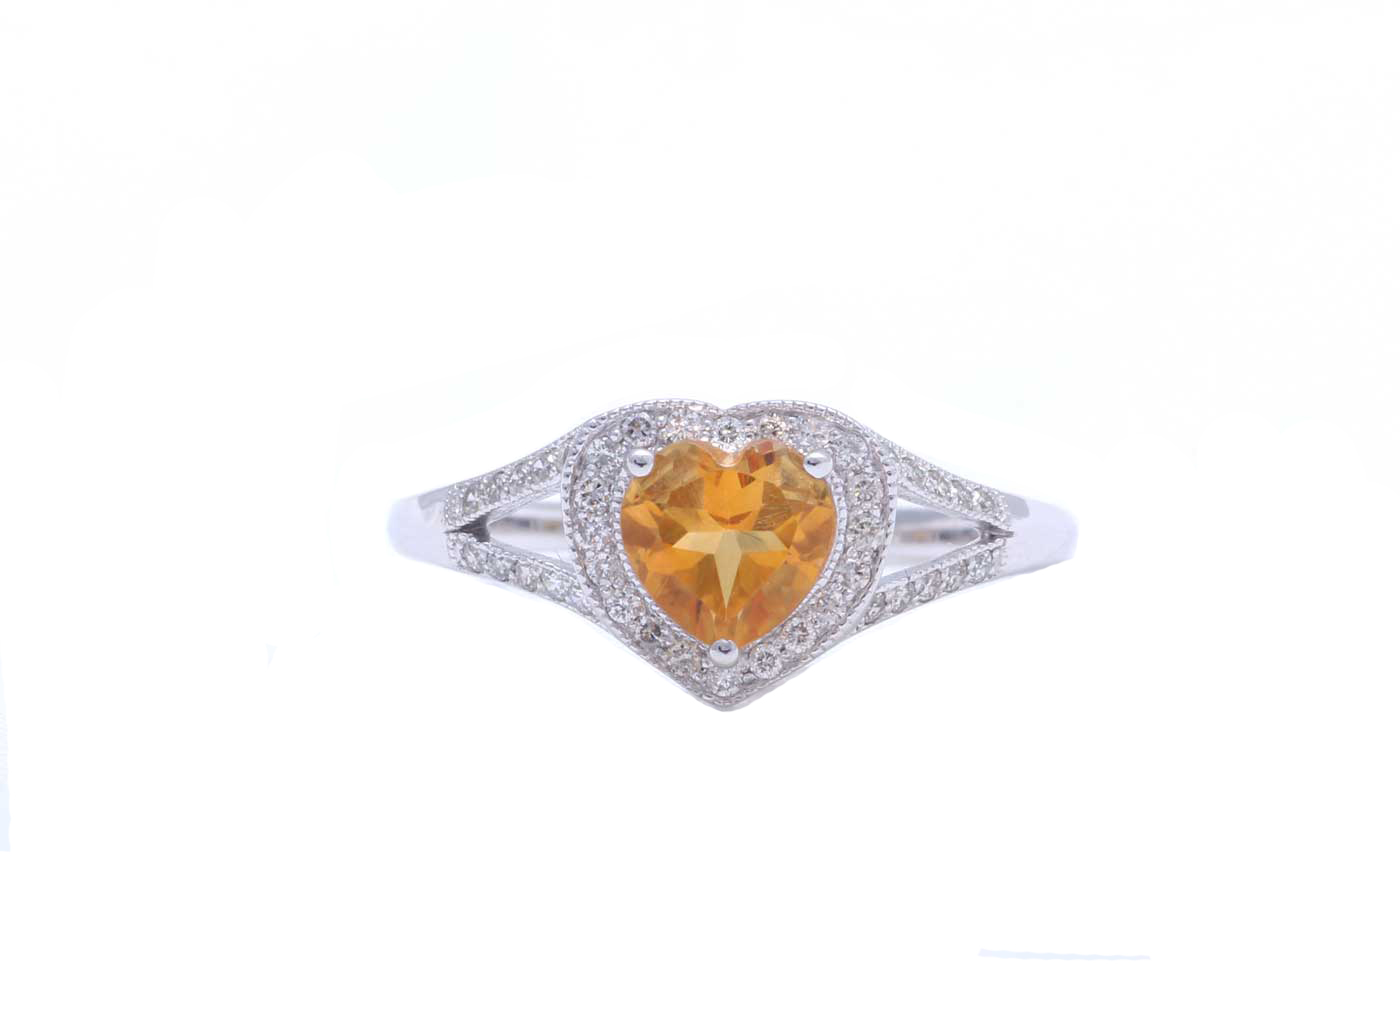 Lot 60 - 9ct White Gold Heart Shape Citrine Diamond Ring 0.20 Carats